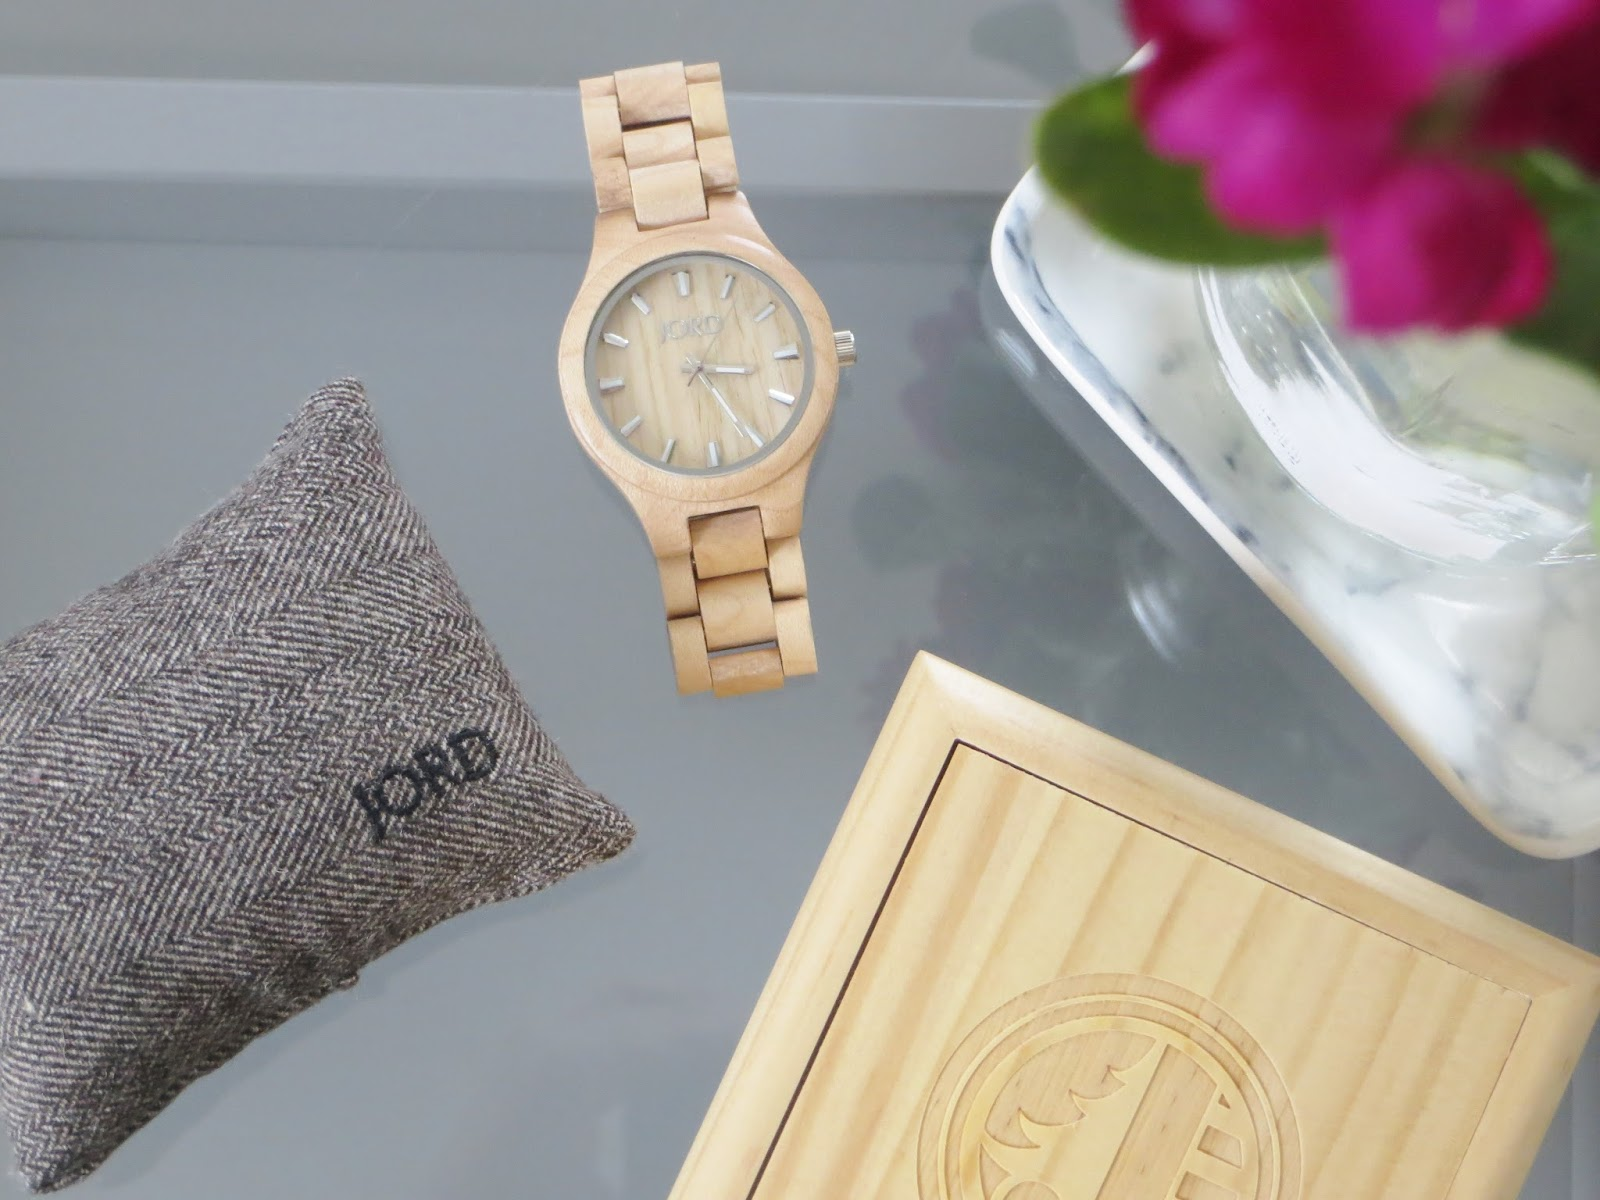 Sustainable watches made from wood!